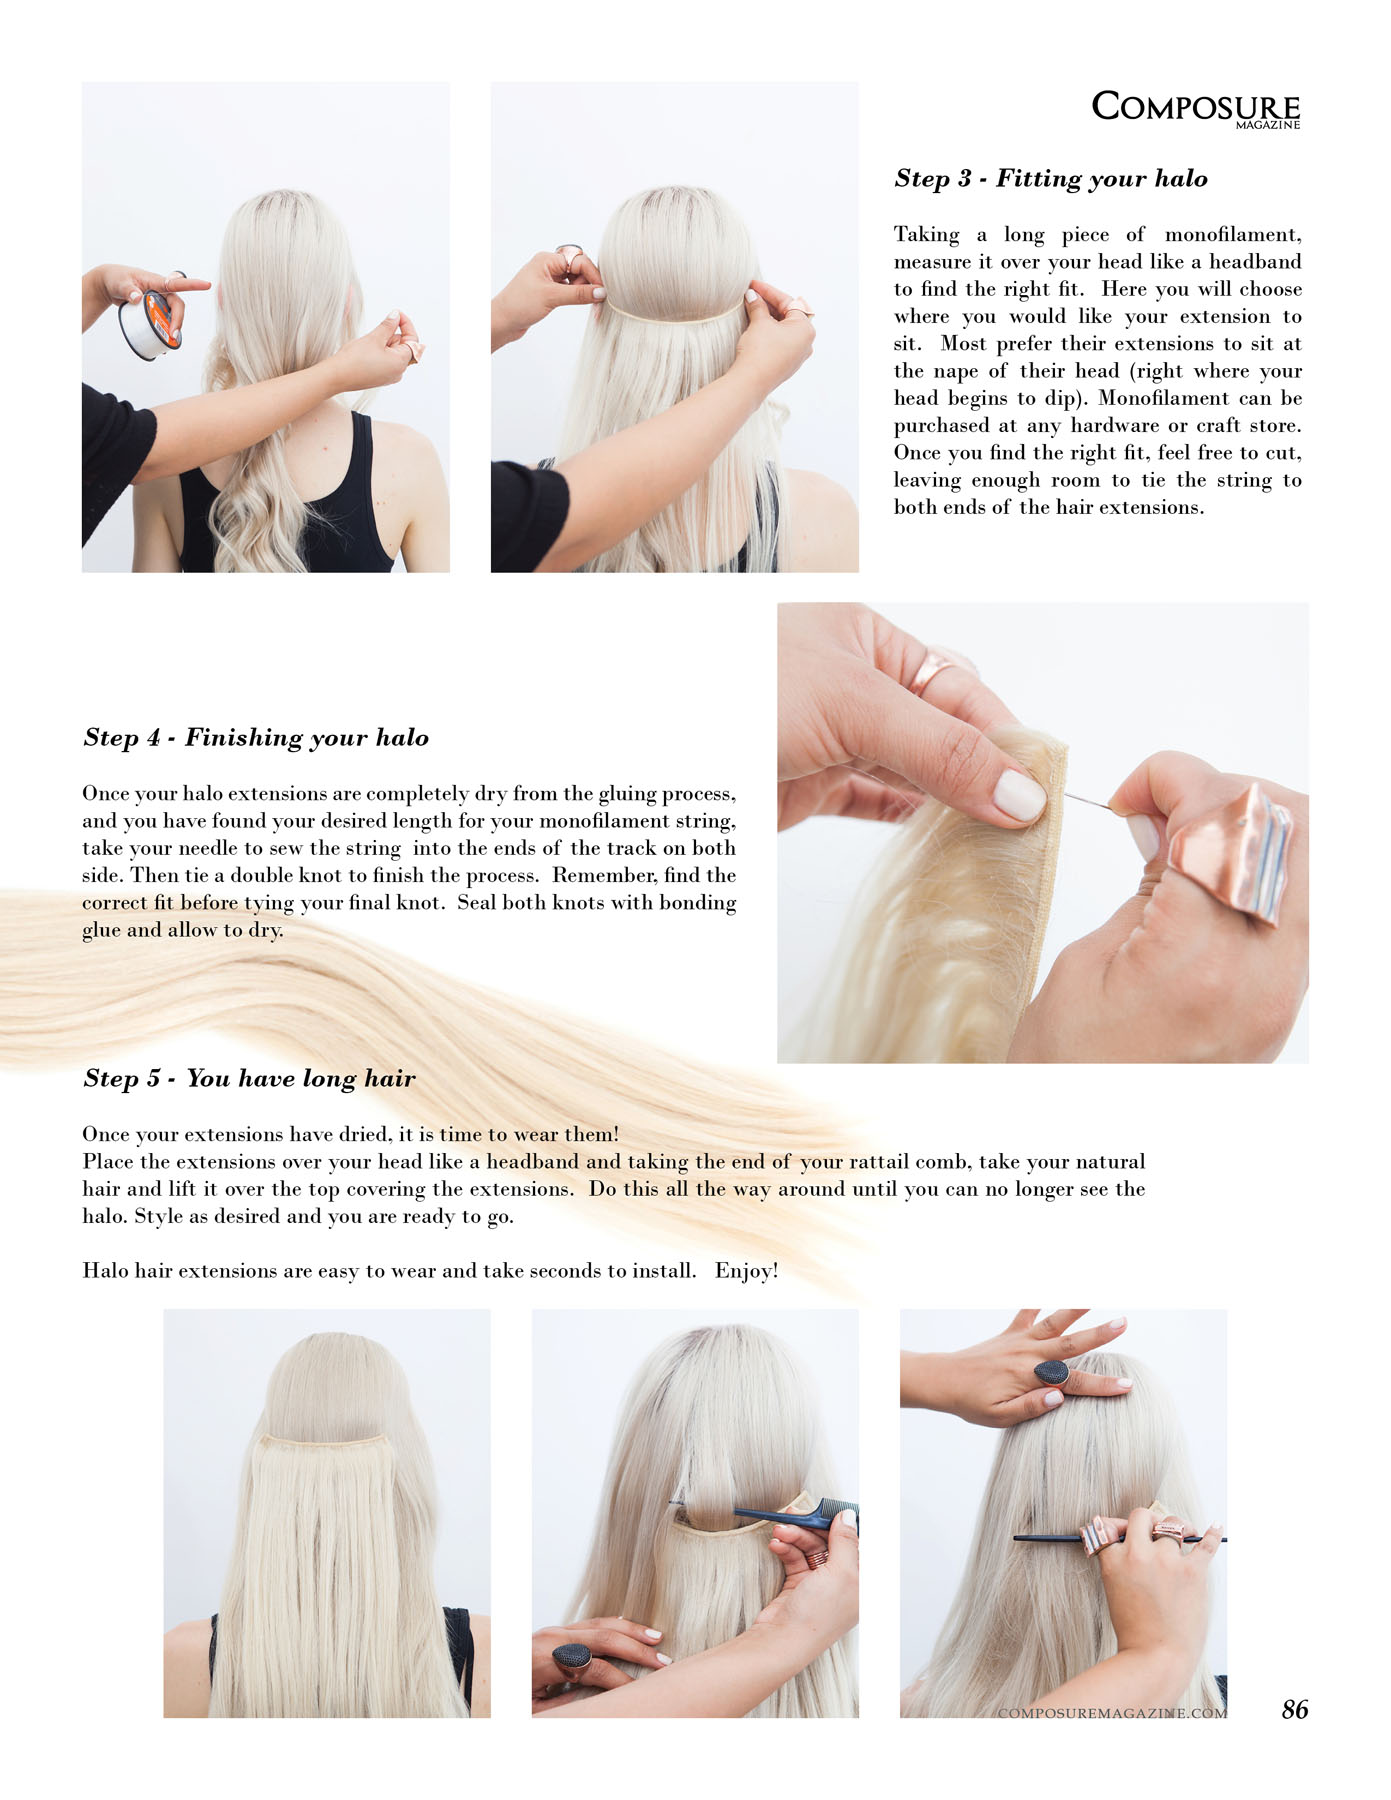 How To Guide For Halo Hair Extensions